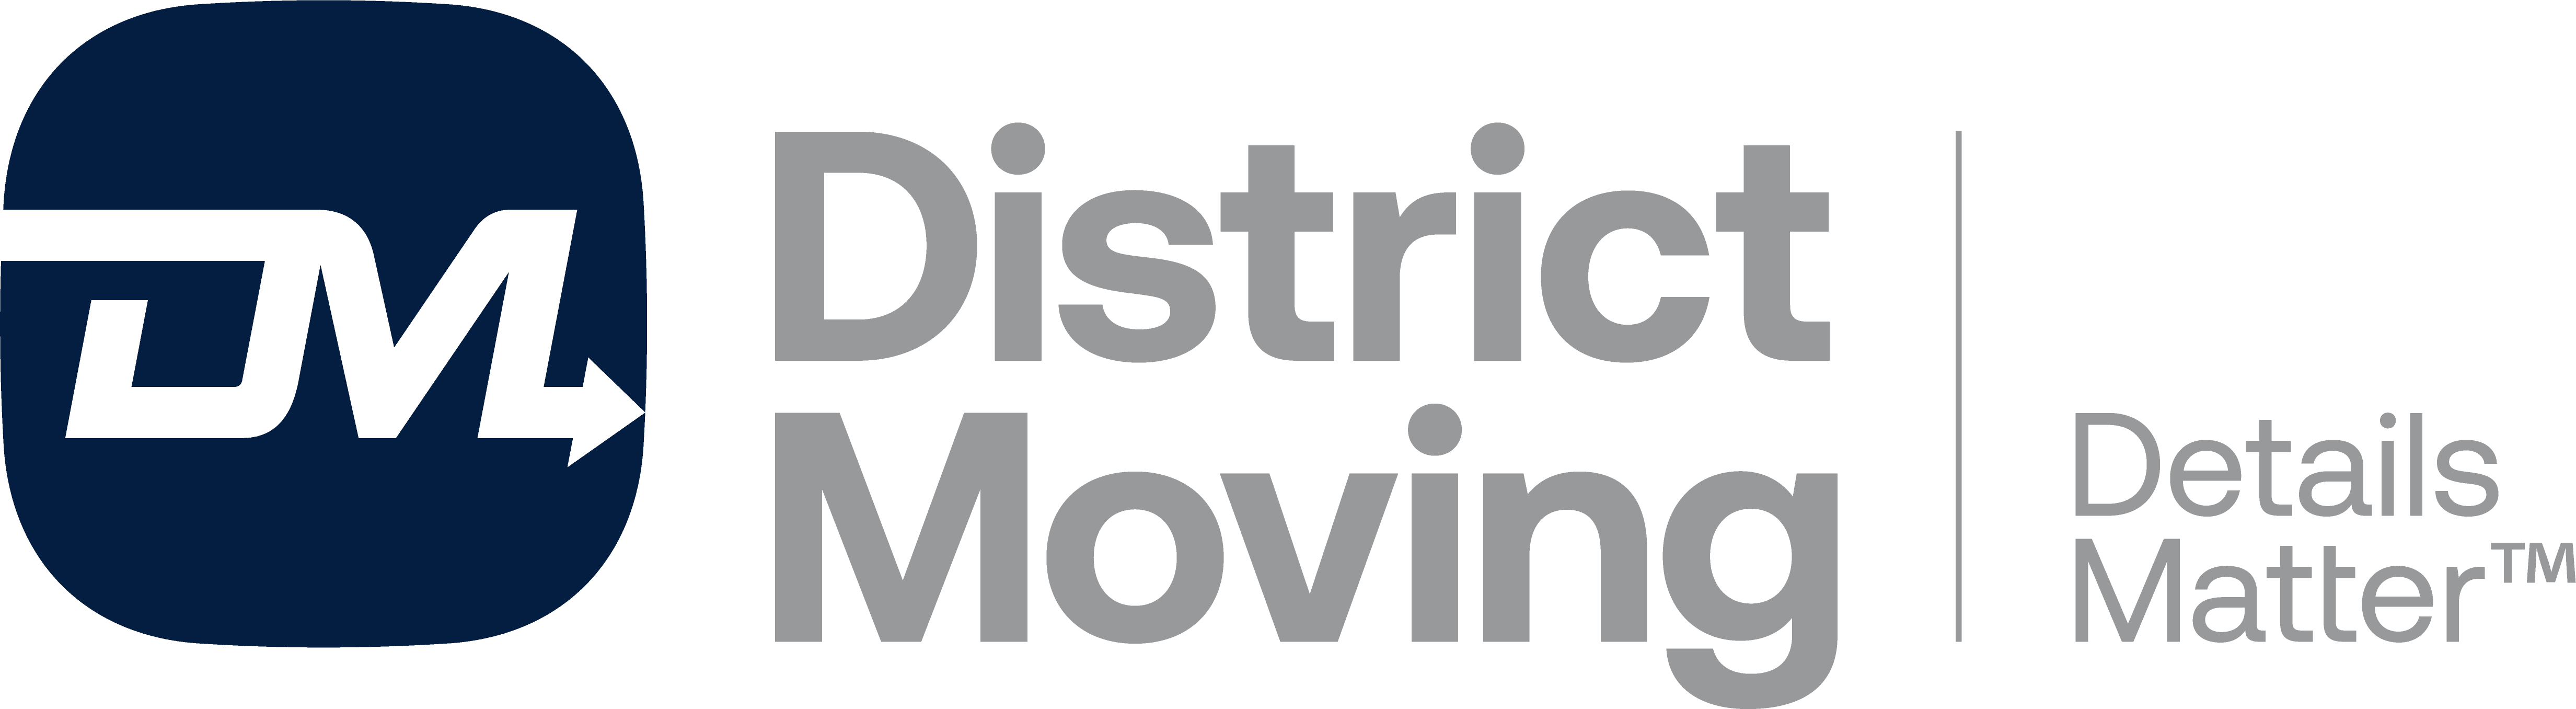 District Moving